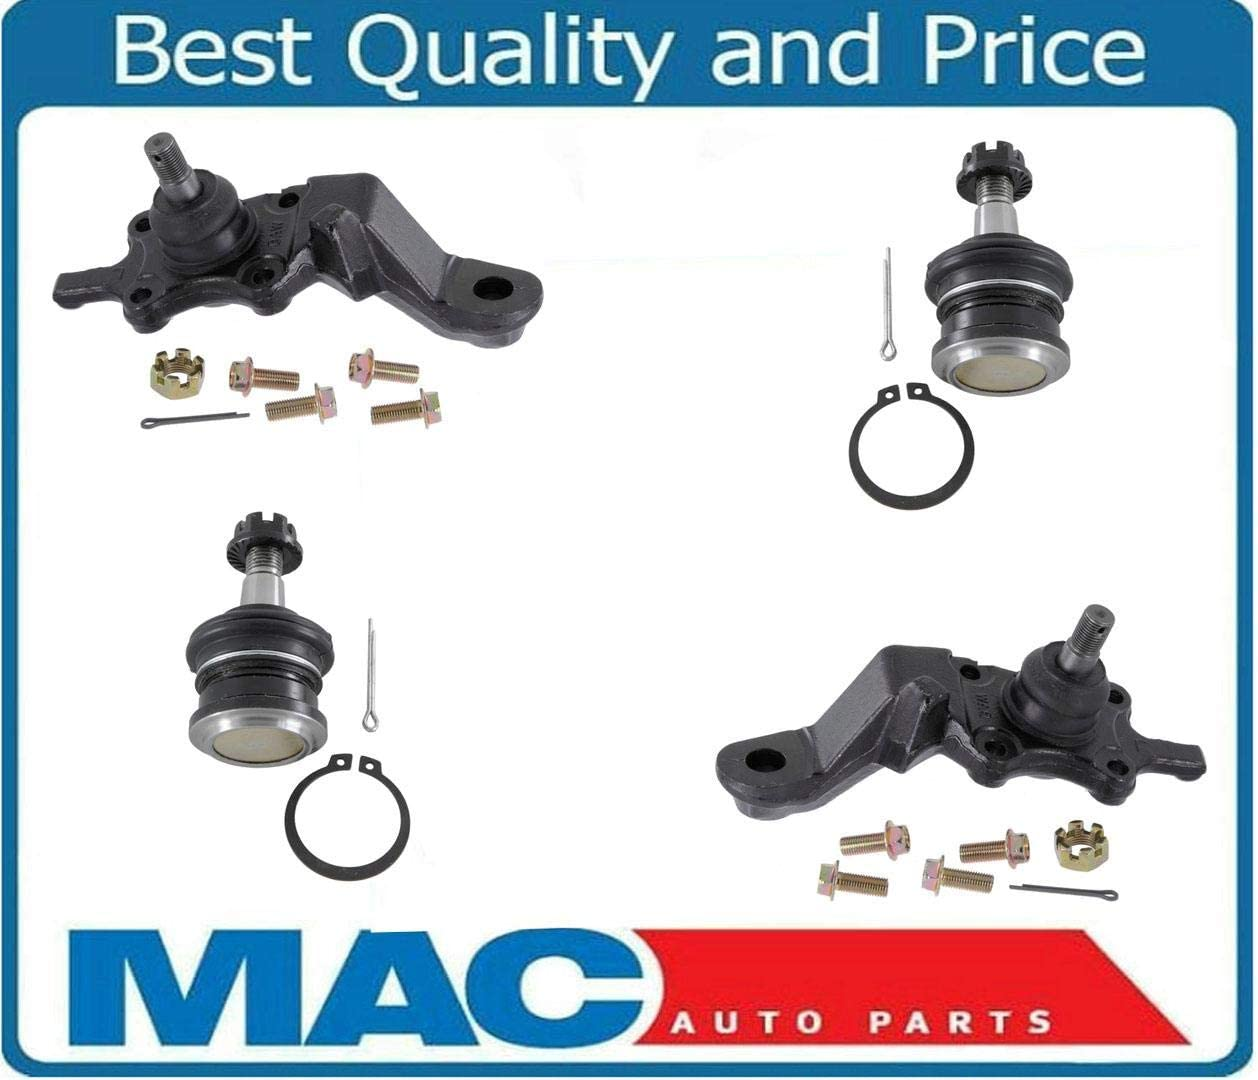 New Front Upper /& Lower Ball Joints fits 95-03 Toyota Tacoma 4 Wheel Drive /& Pre-Runner Rear Wheel Drive